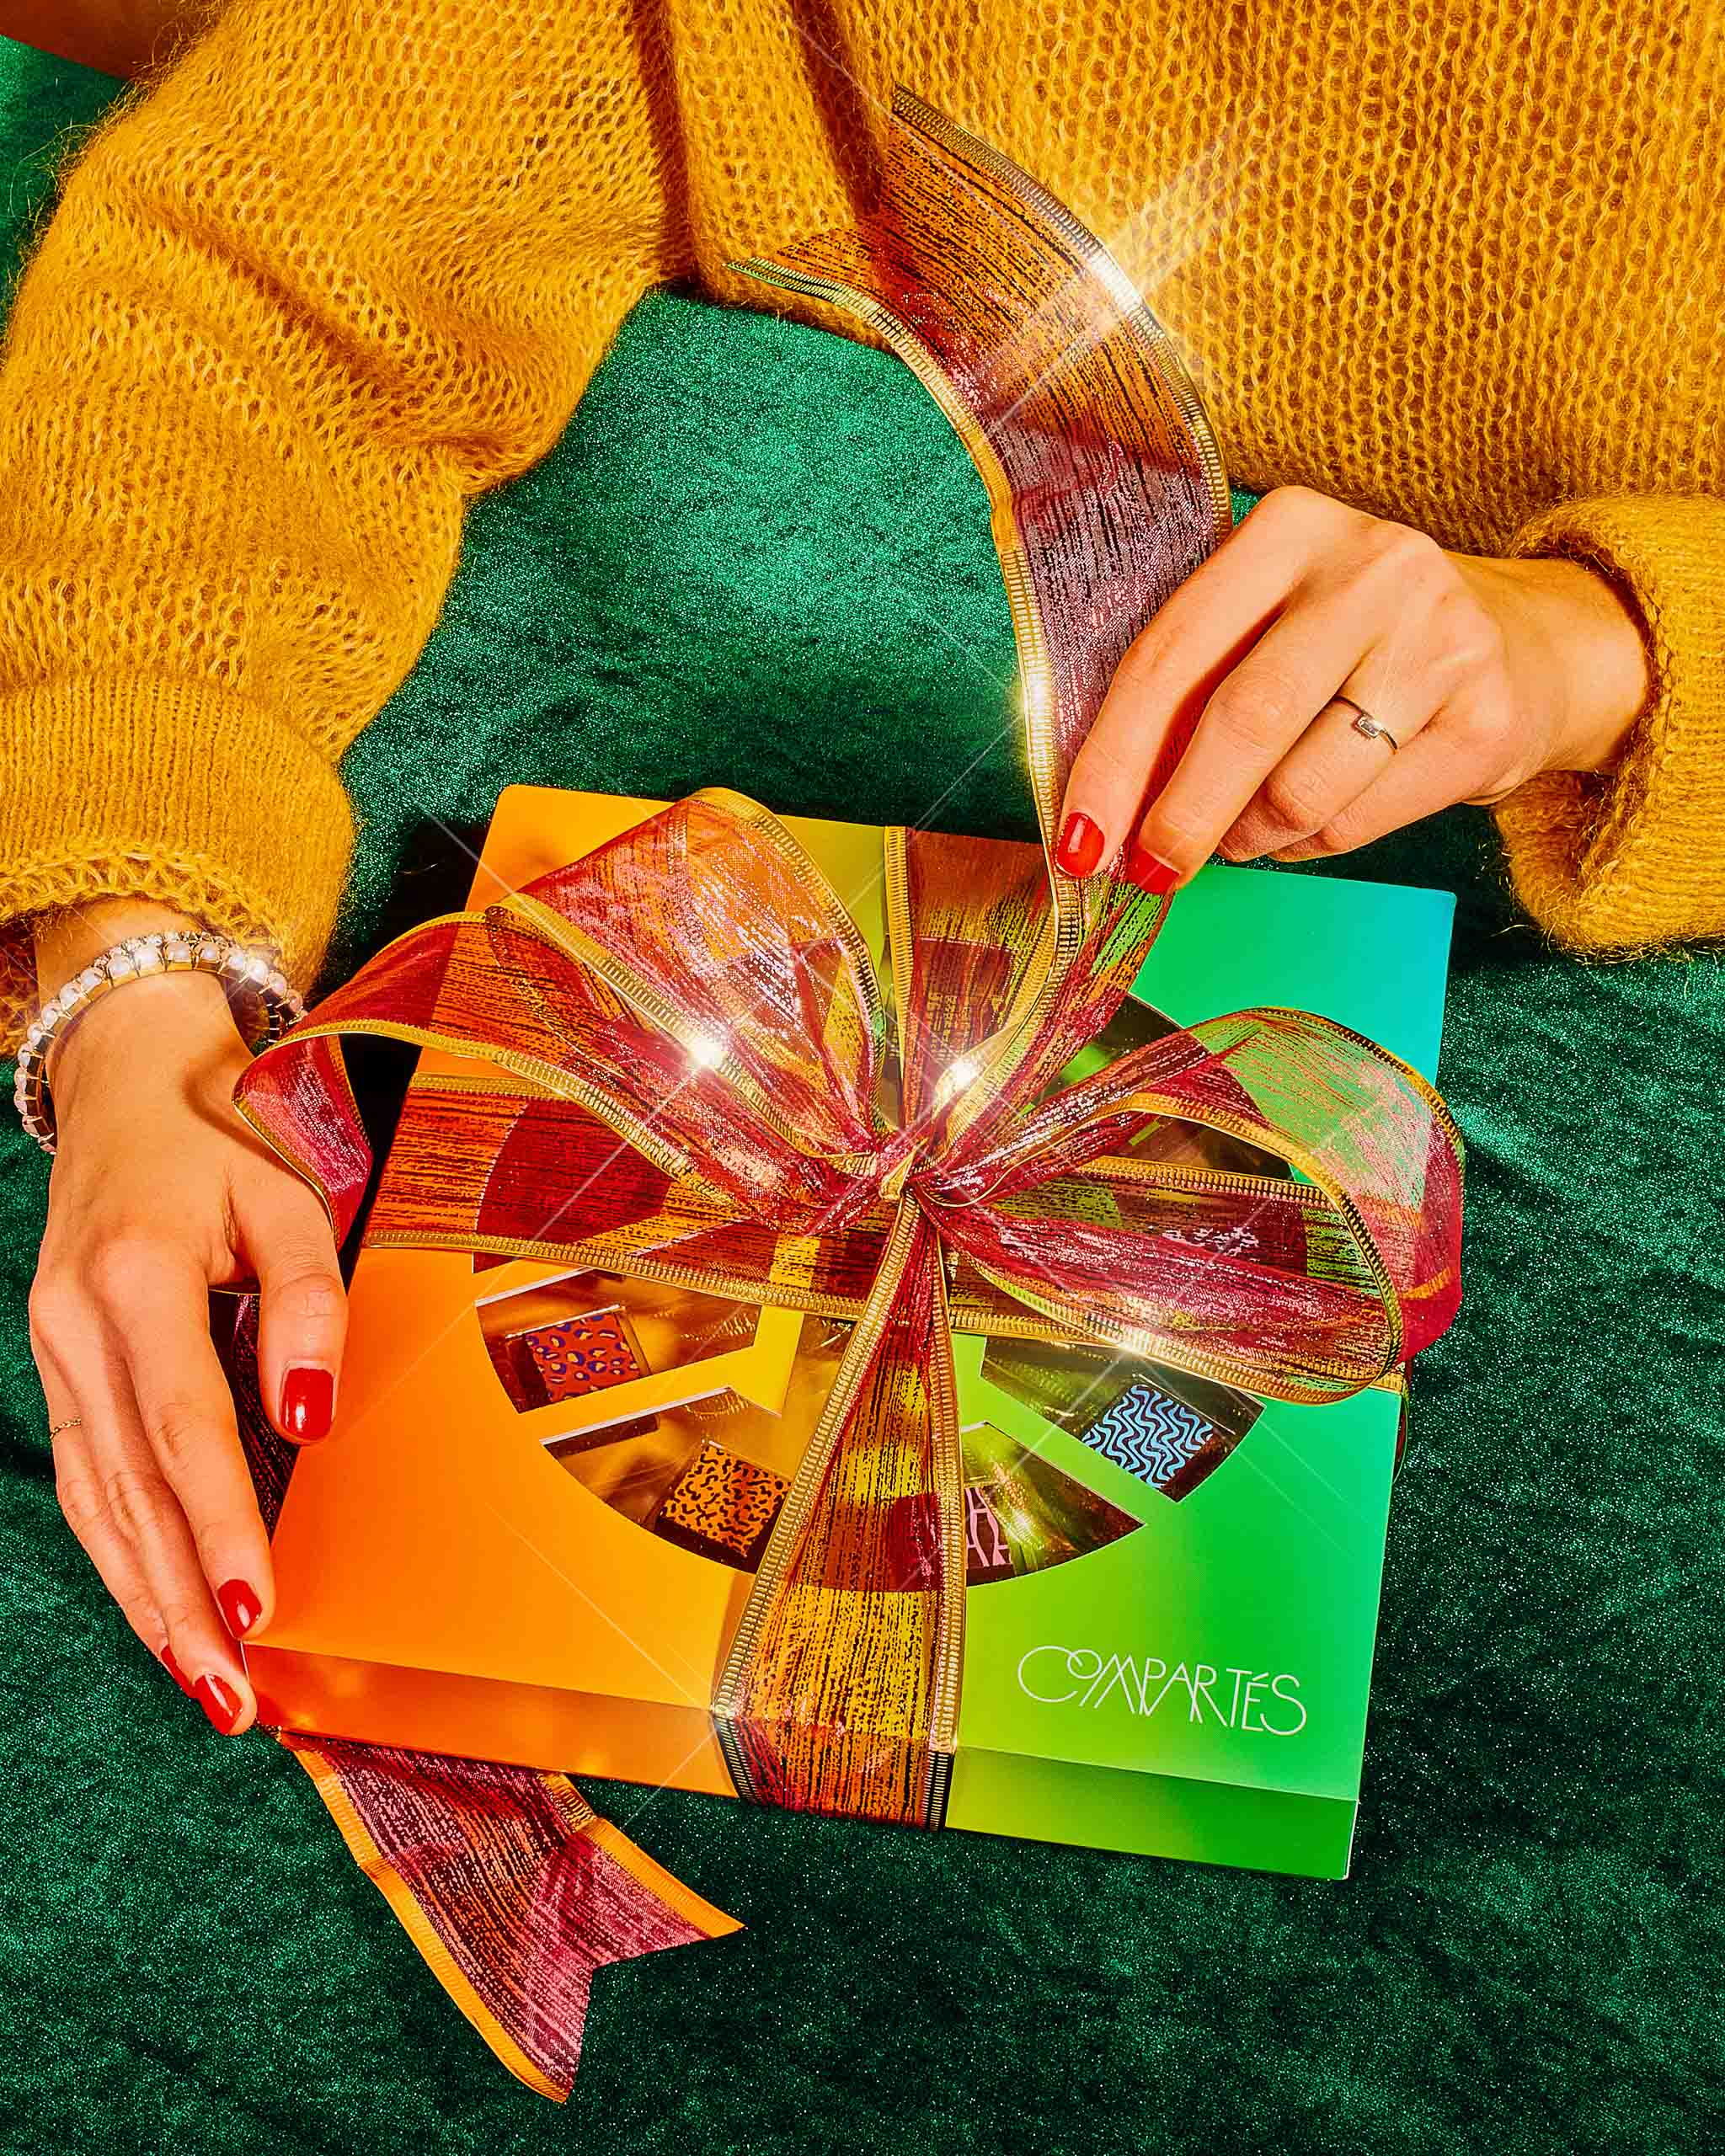 Gourmet Gift Sets & Chocolate Towers